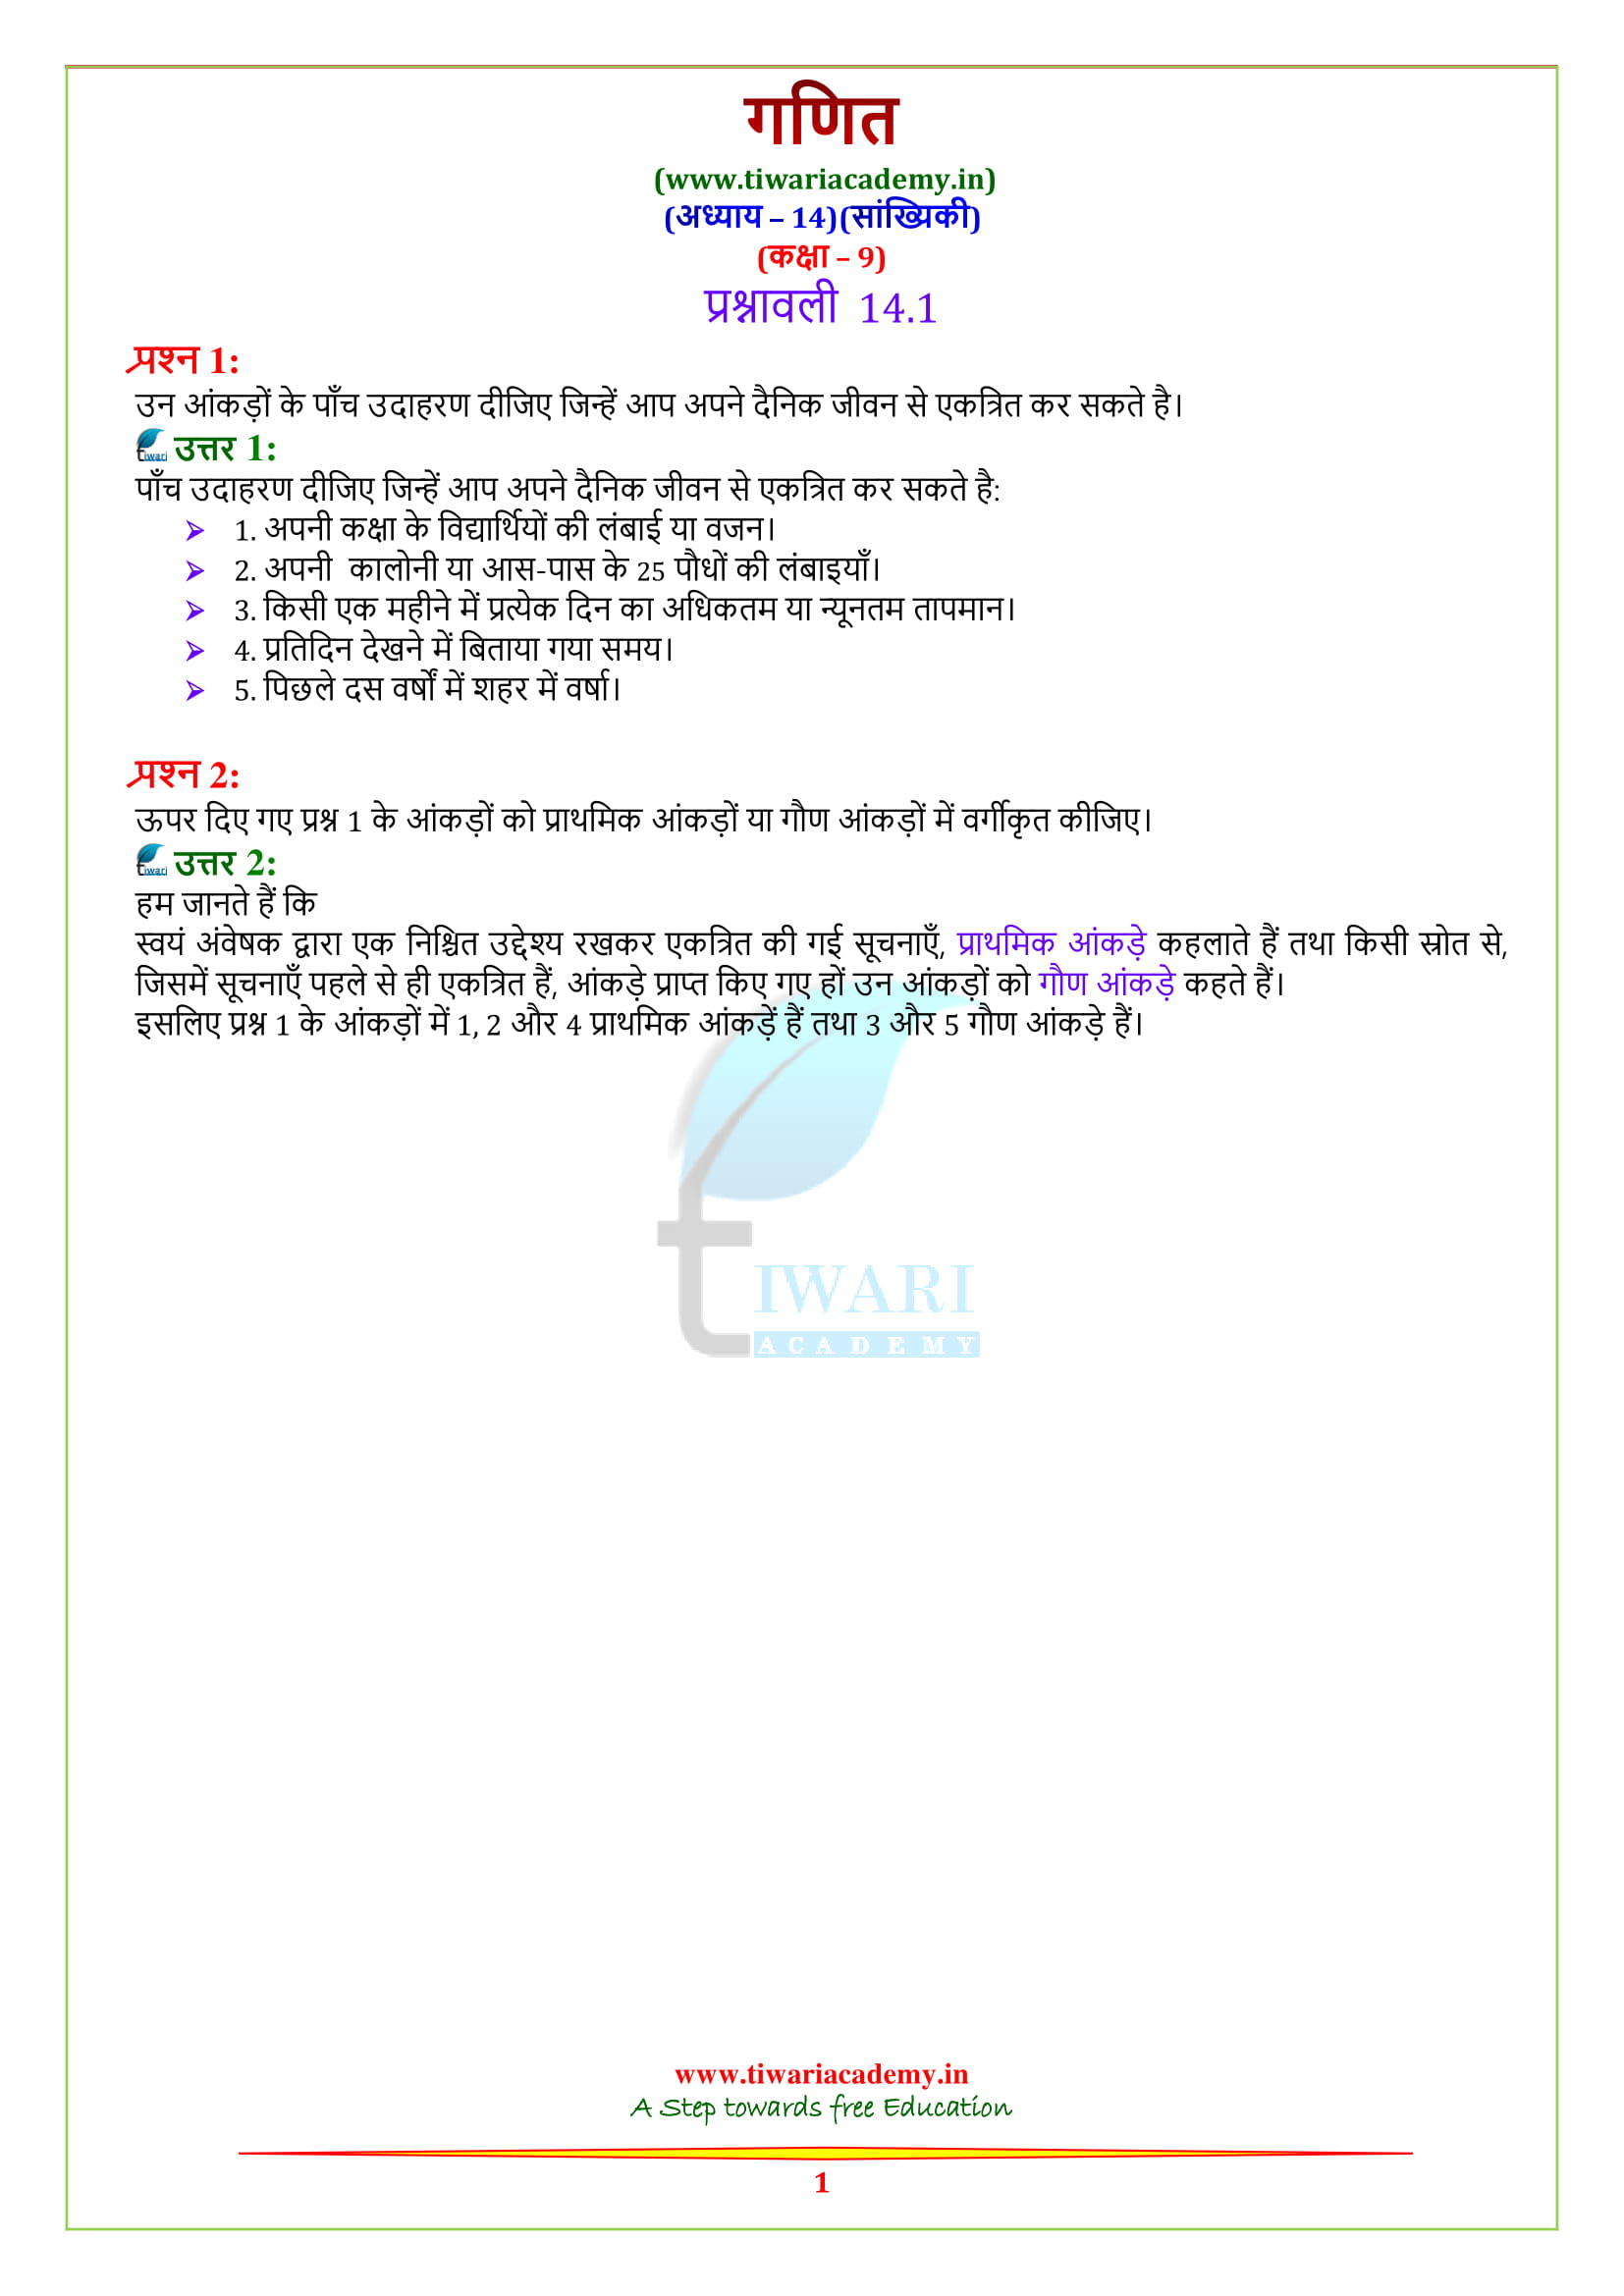 NCERT Solutions for Class 9 Maths Chapter 14 Exercise 14.1 in hindi medium